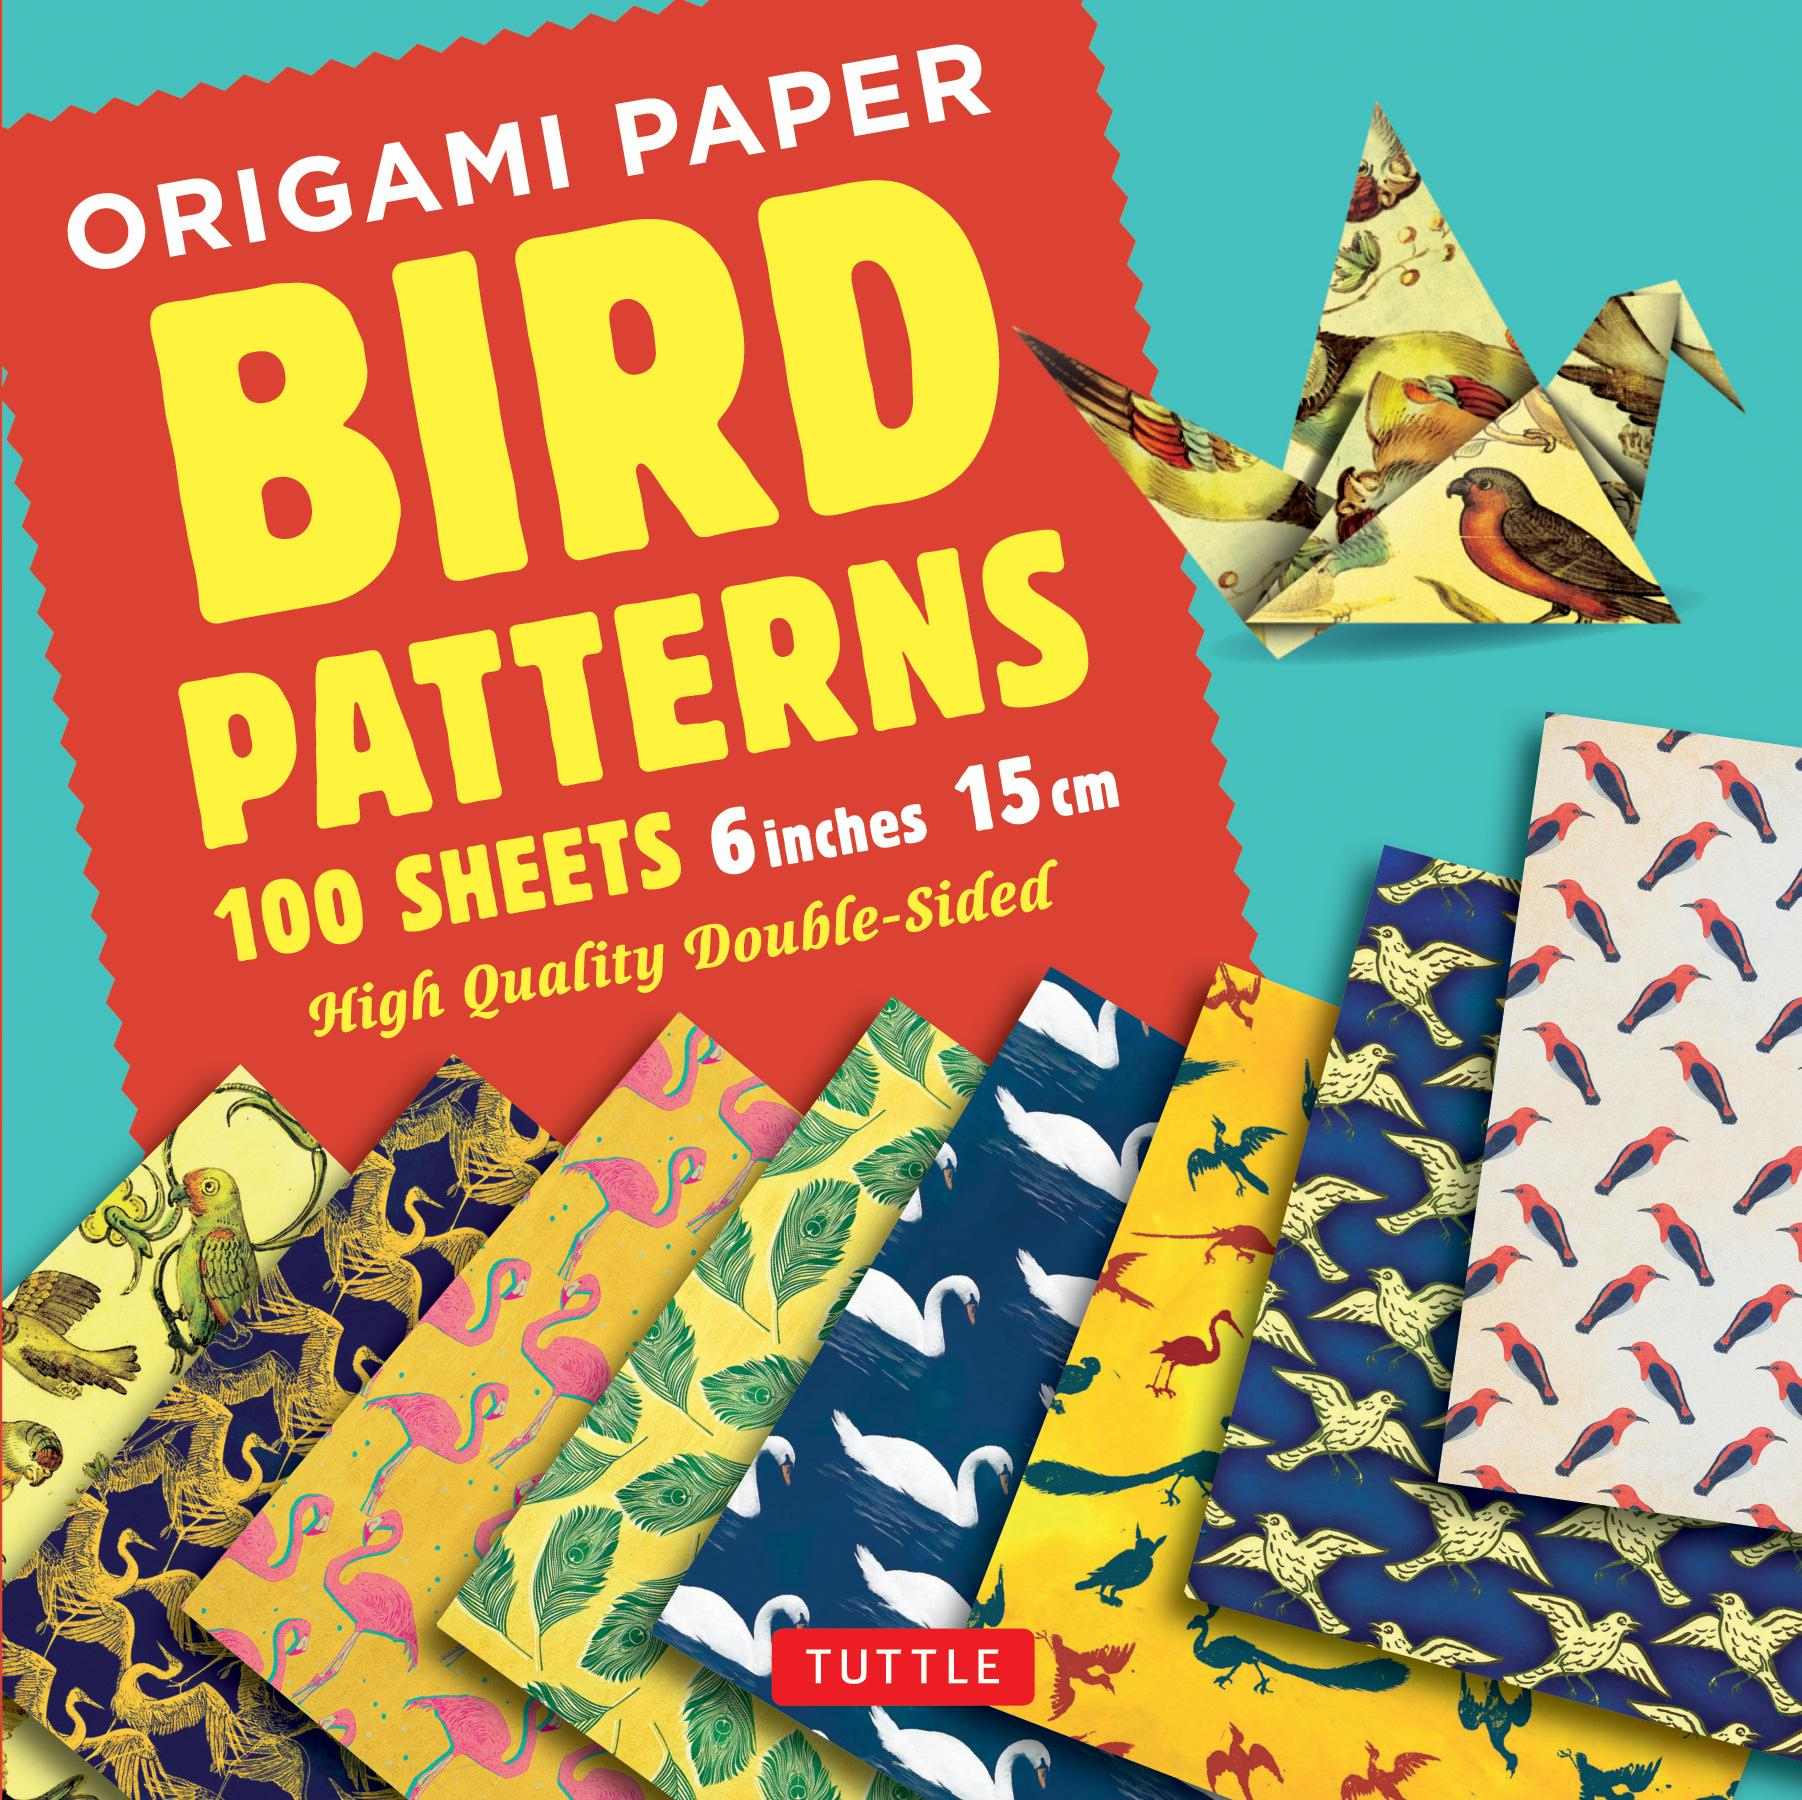 """Origami Paper 100 Sheets Bird Patterns 6"""" (15 CM): Tuttle Origami Paper: High-Quality Origami Sheets Printed with 8 Different Designs: Instructions for 8 Projects Included (Other)"""